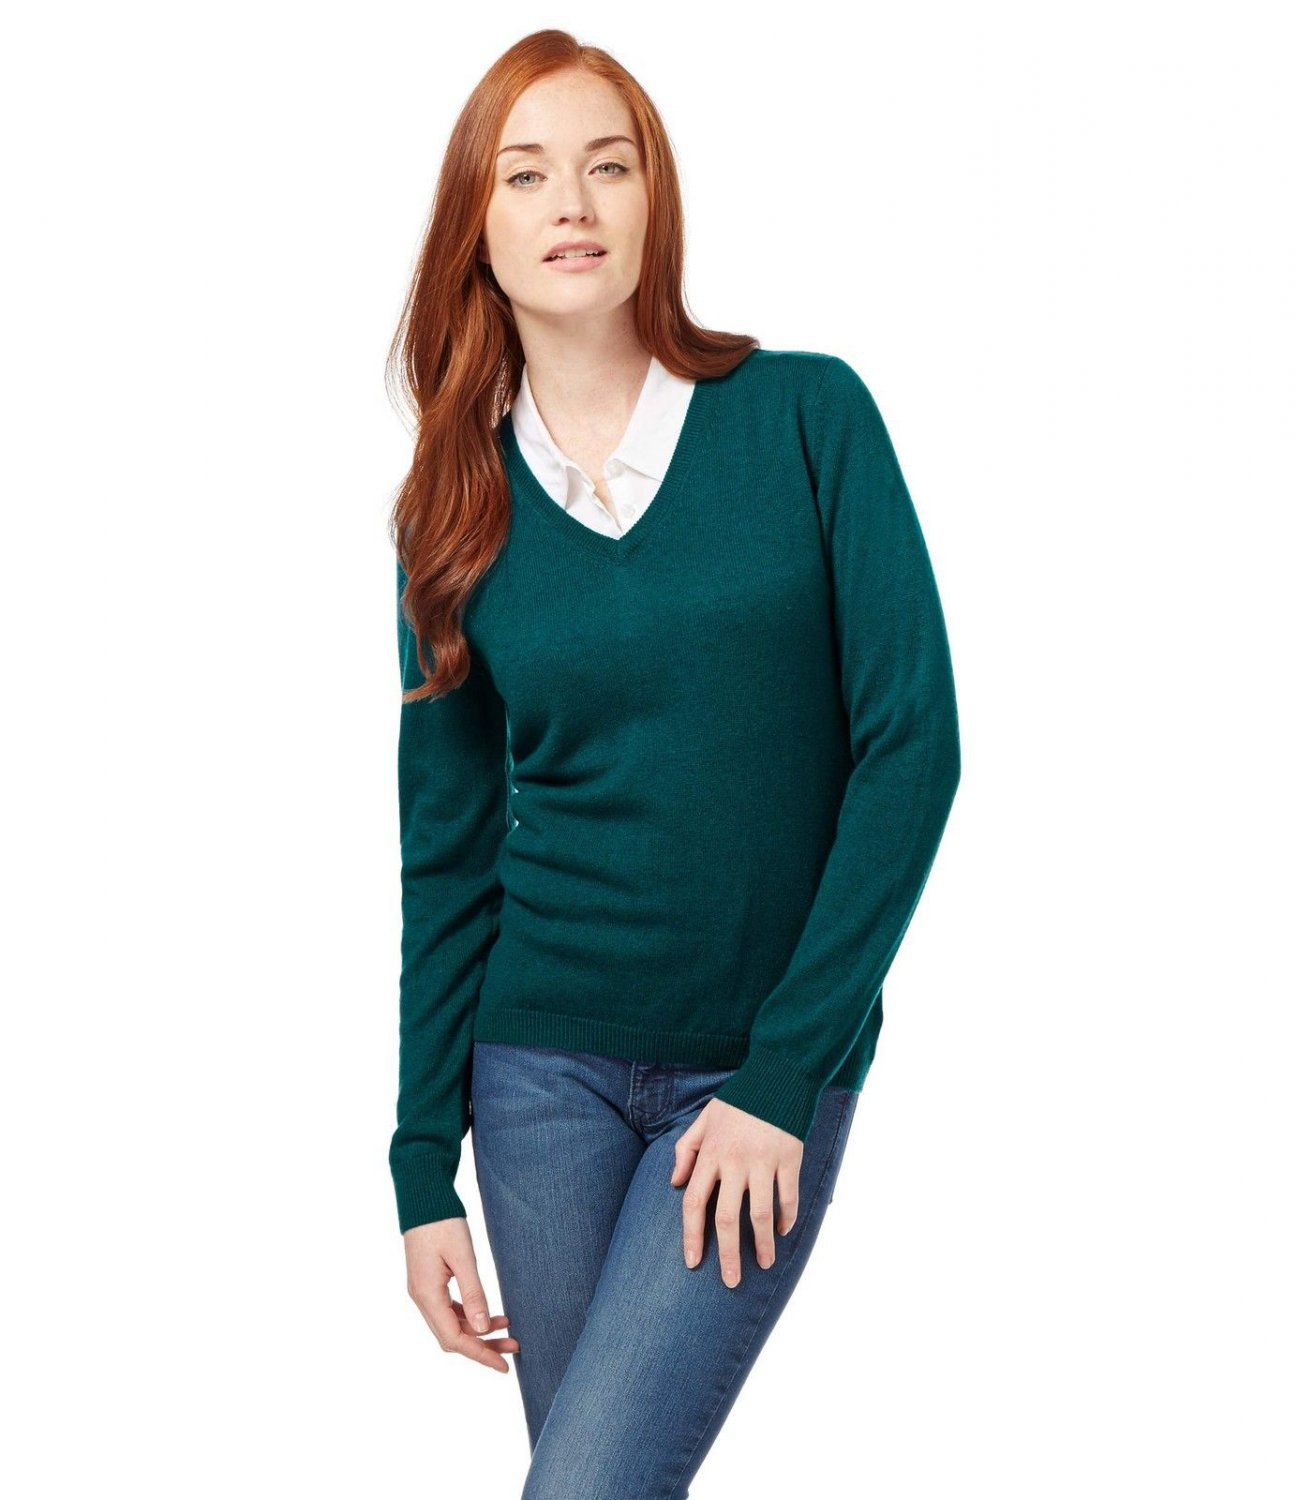 WoolOvers Ladies Cashmere and Merino V Neck Knitted Sweater Jumper Knitwear